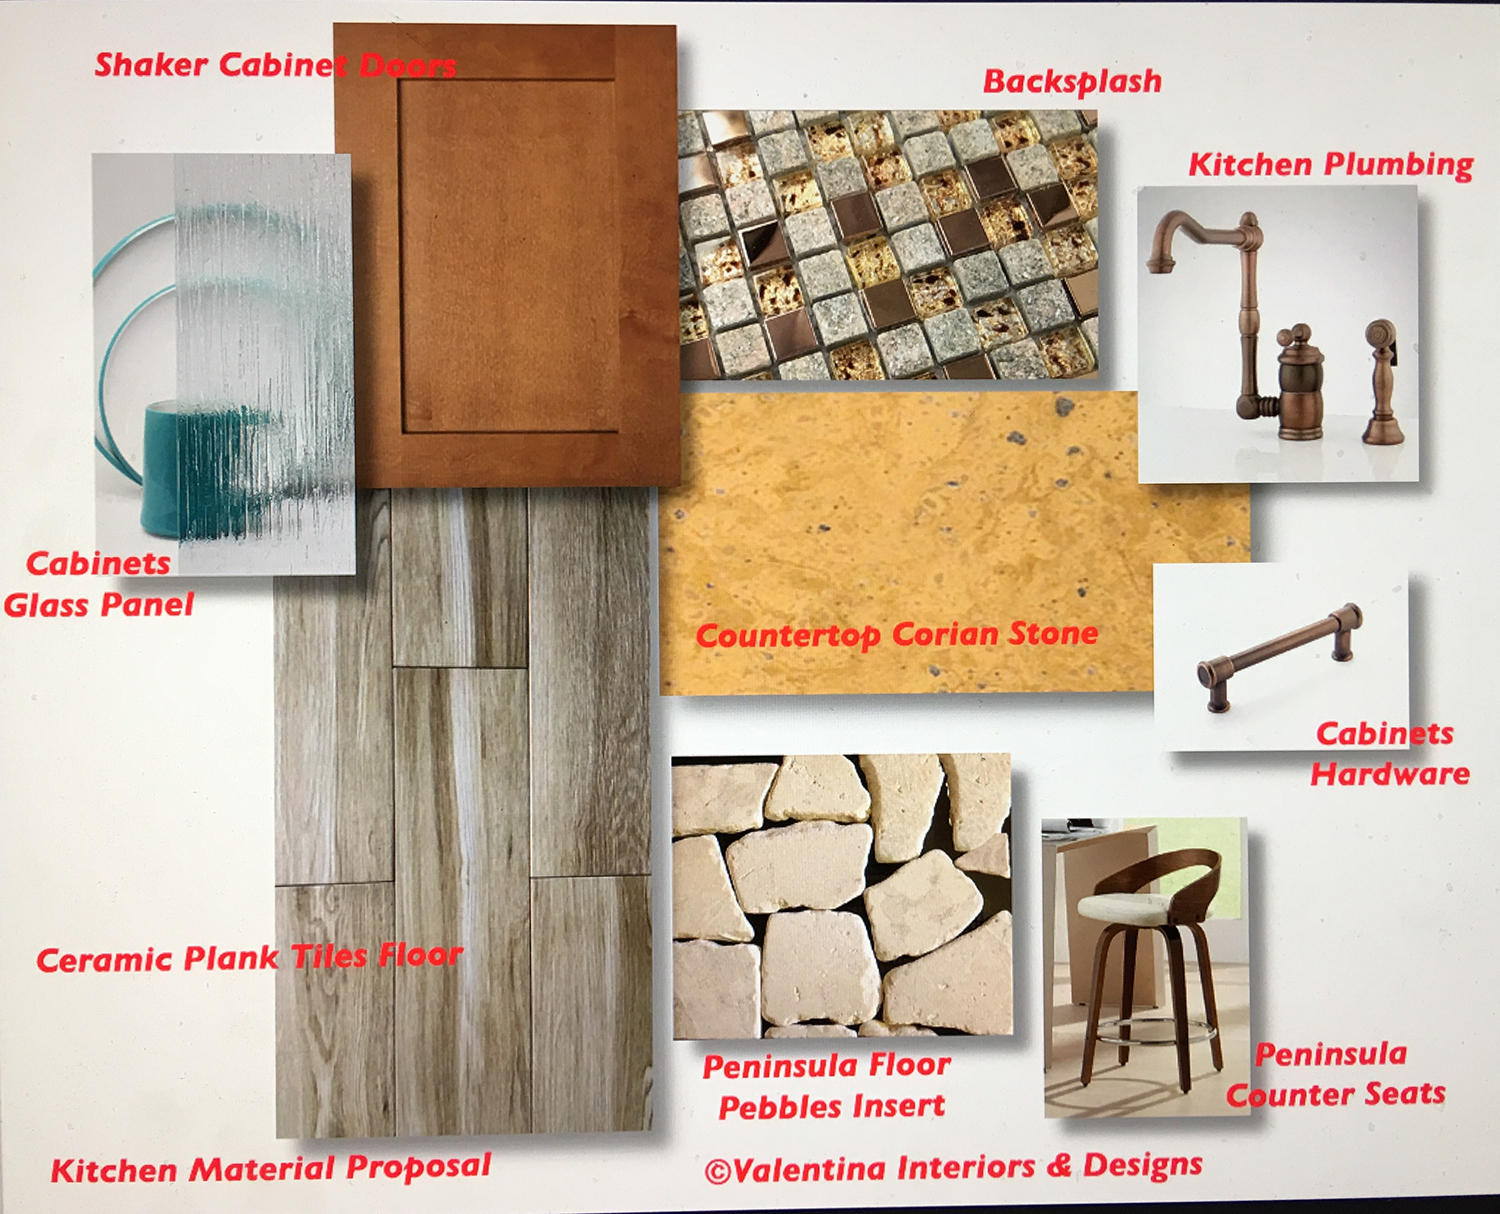 Kitchen-Material-Proposal